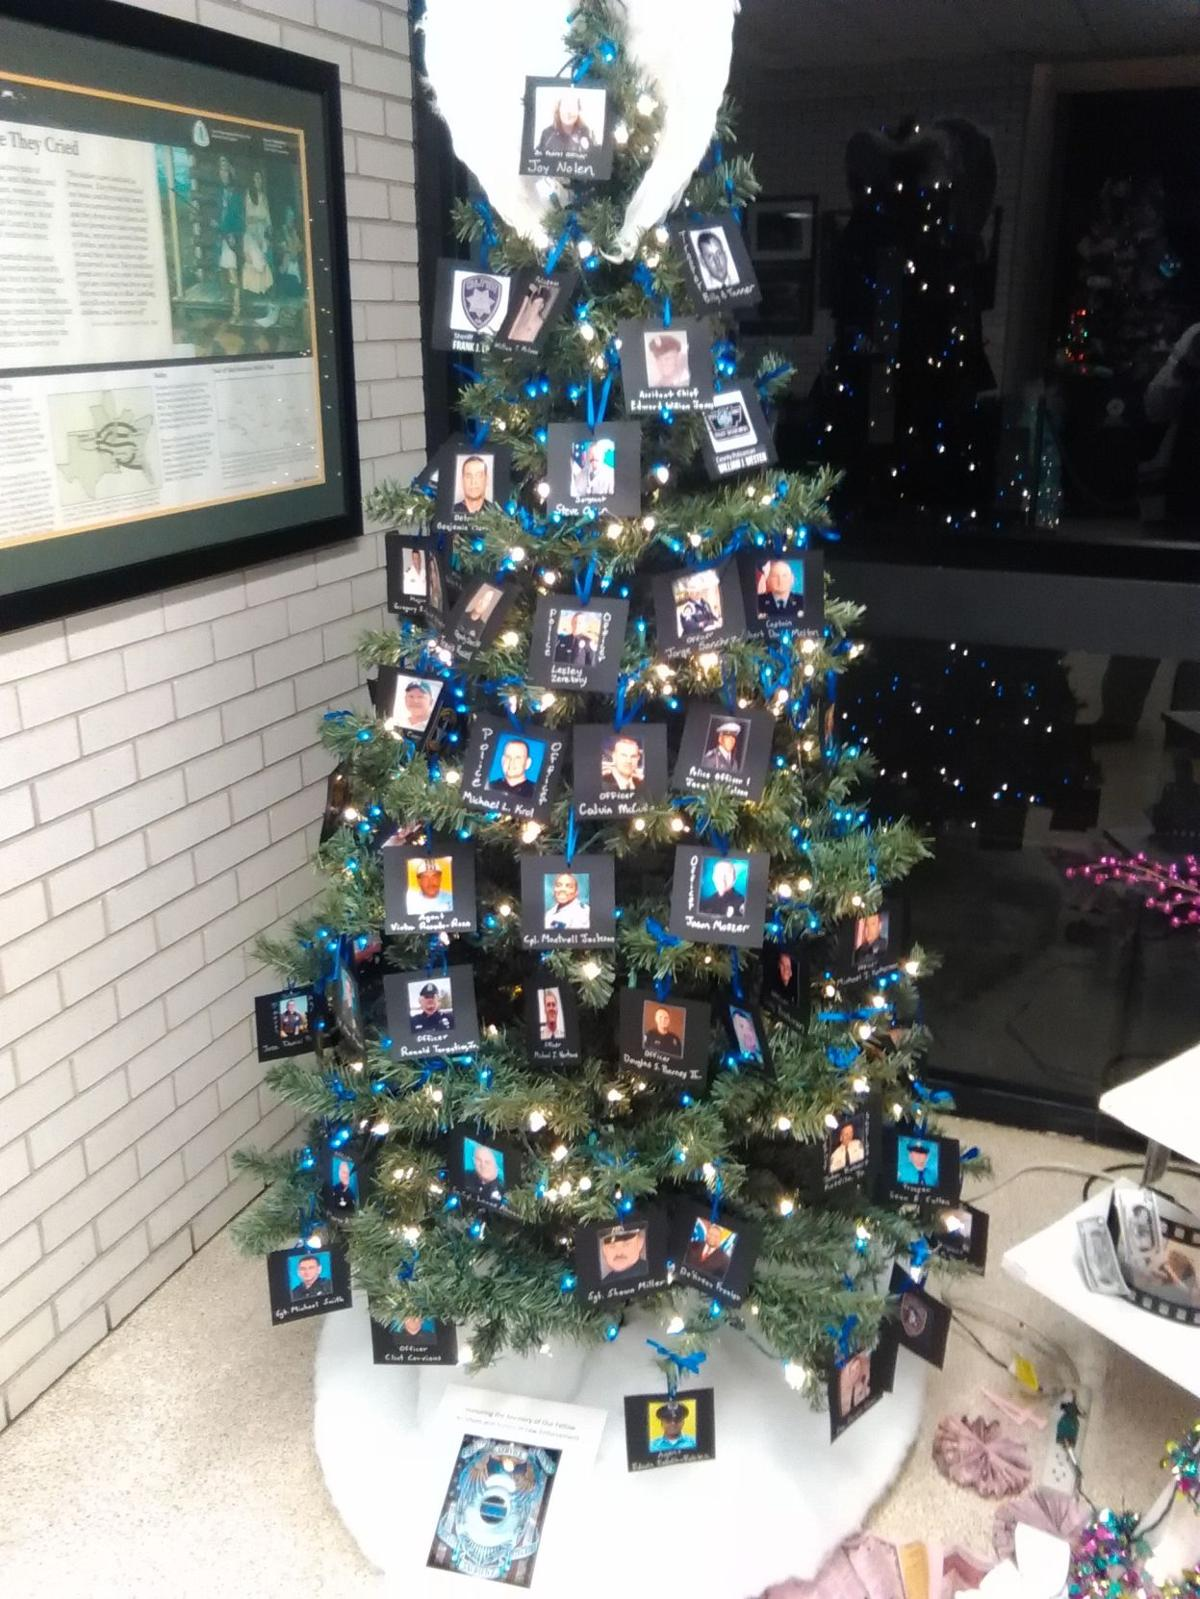 Cedartown Police Department Christmas tree